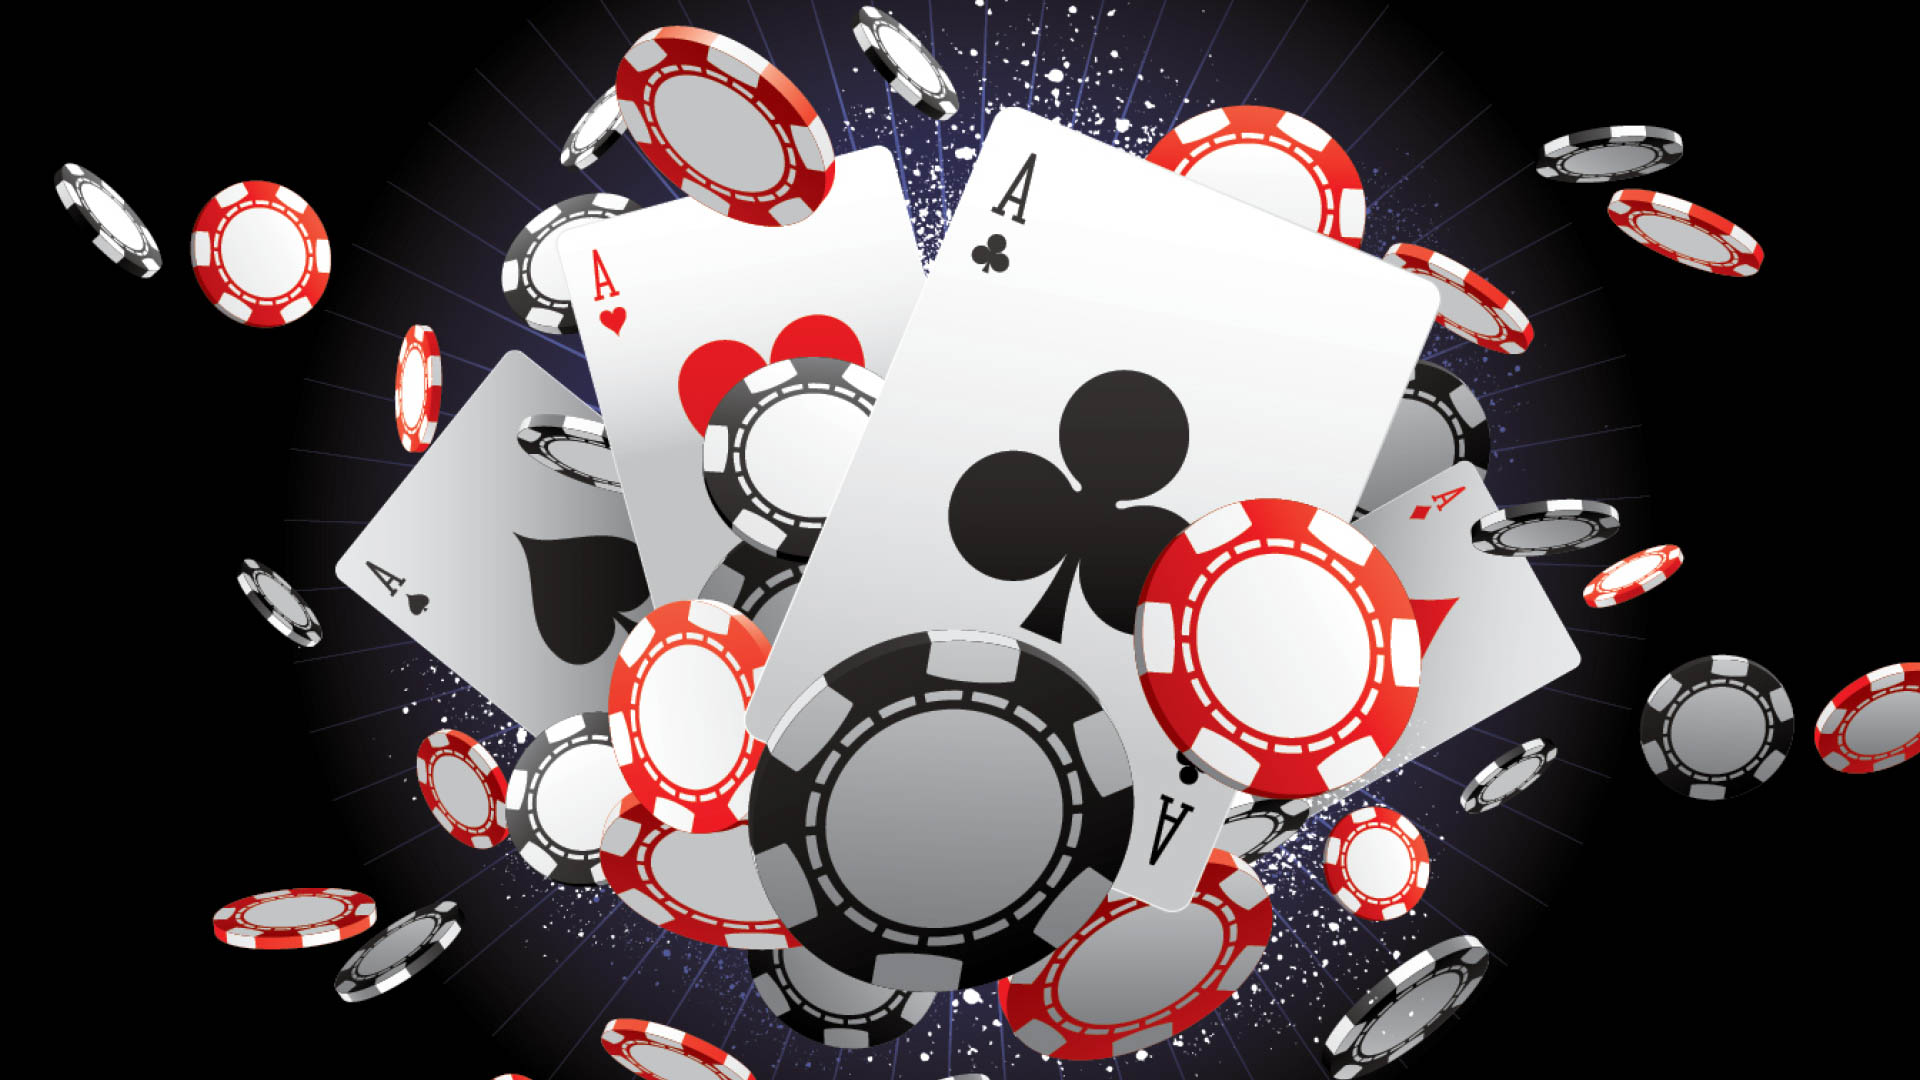 THE GAME OF RUMMY: A QUICK OVERVIEW